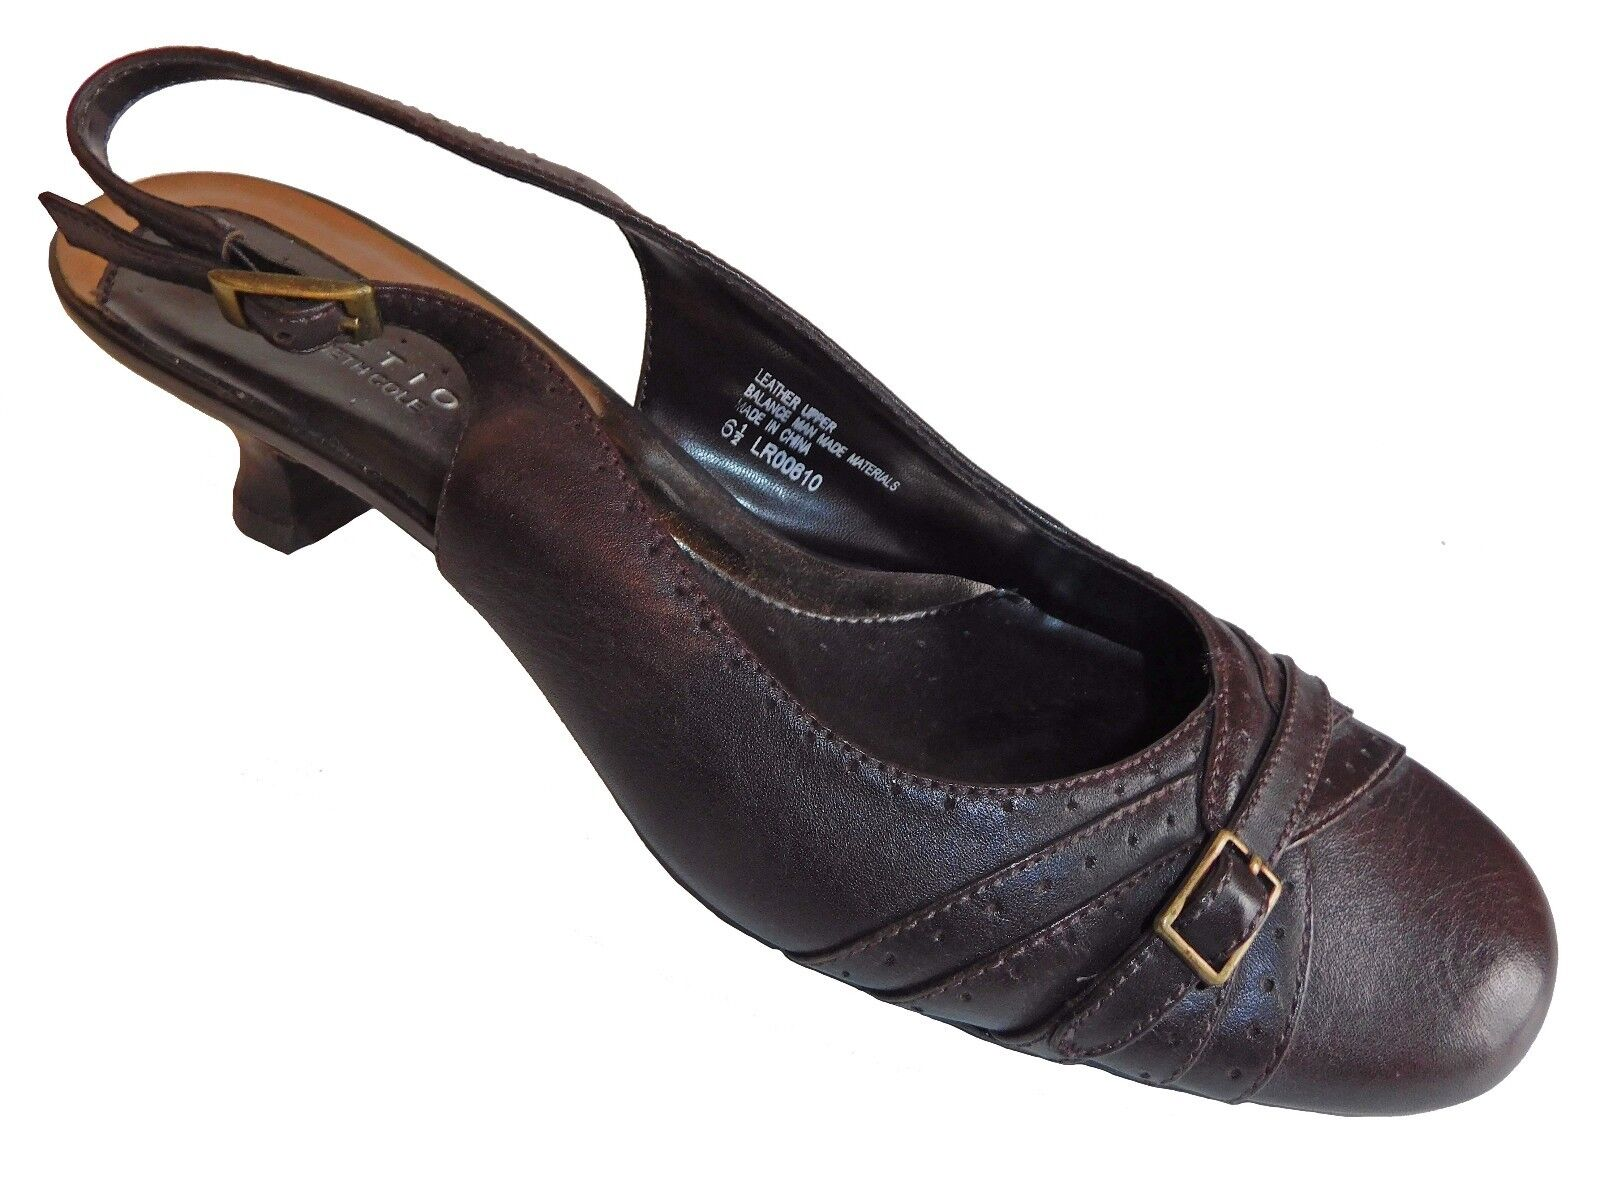 Kenneth Cole Reaction Womens Slingback Brown Pumps Shoes Buckle Trim Brown Slingback Size 6.5 c8140b